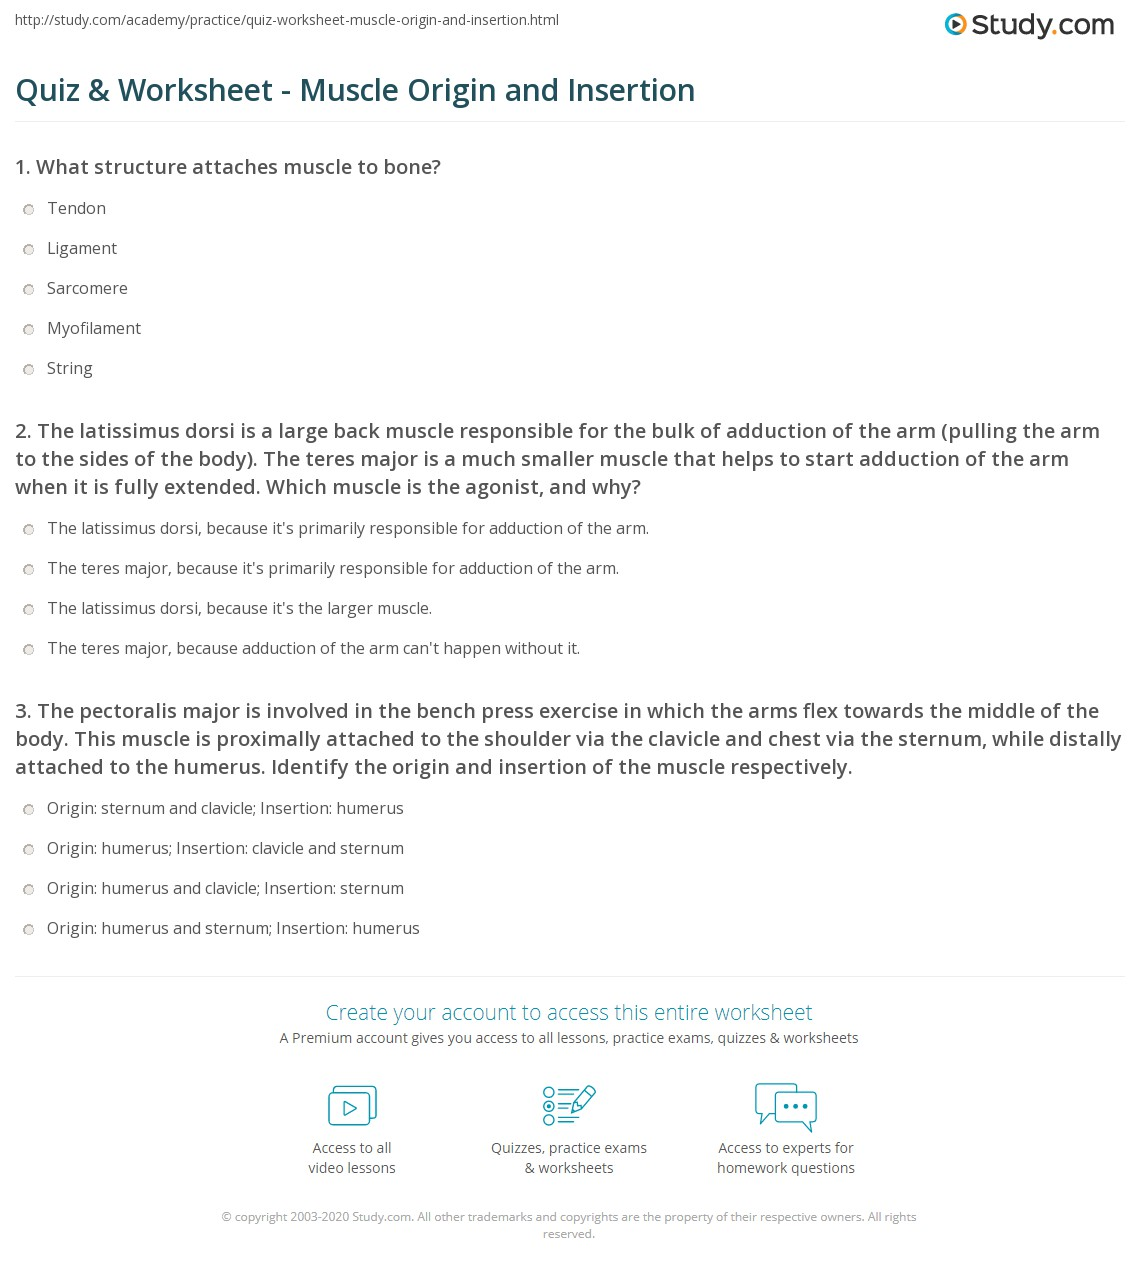 Quiz & Worksheet - Muscle Origin and Insertion | Study.com